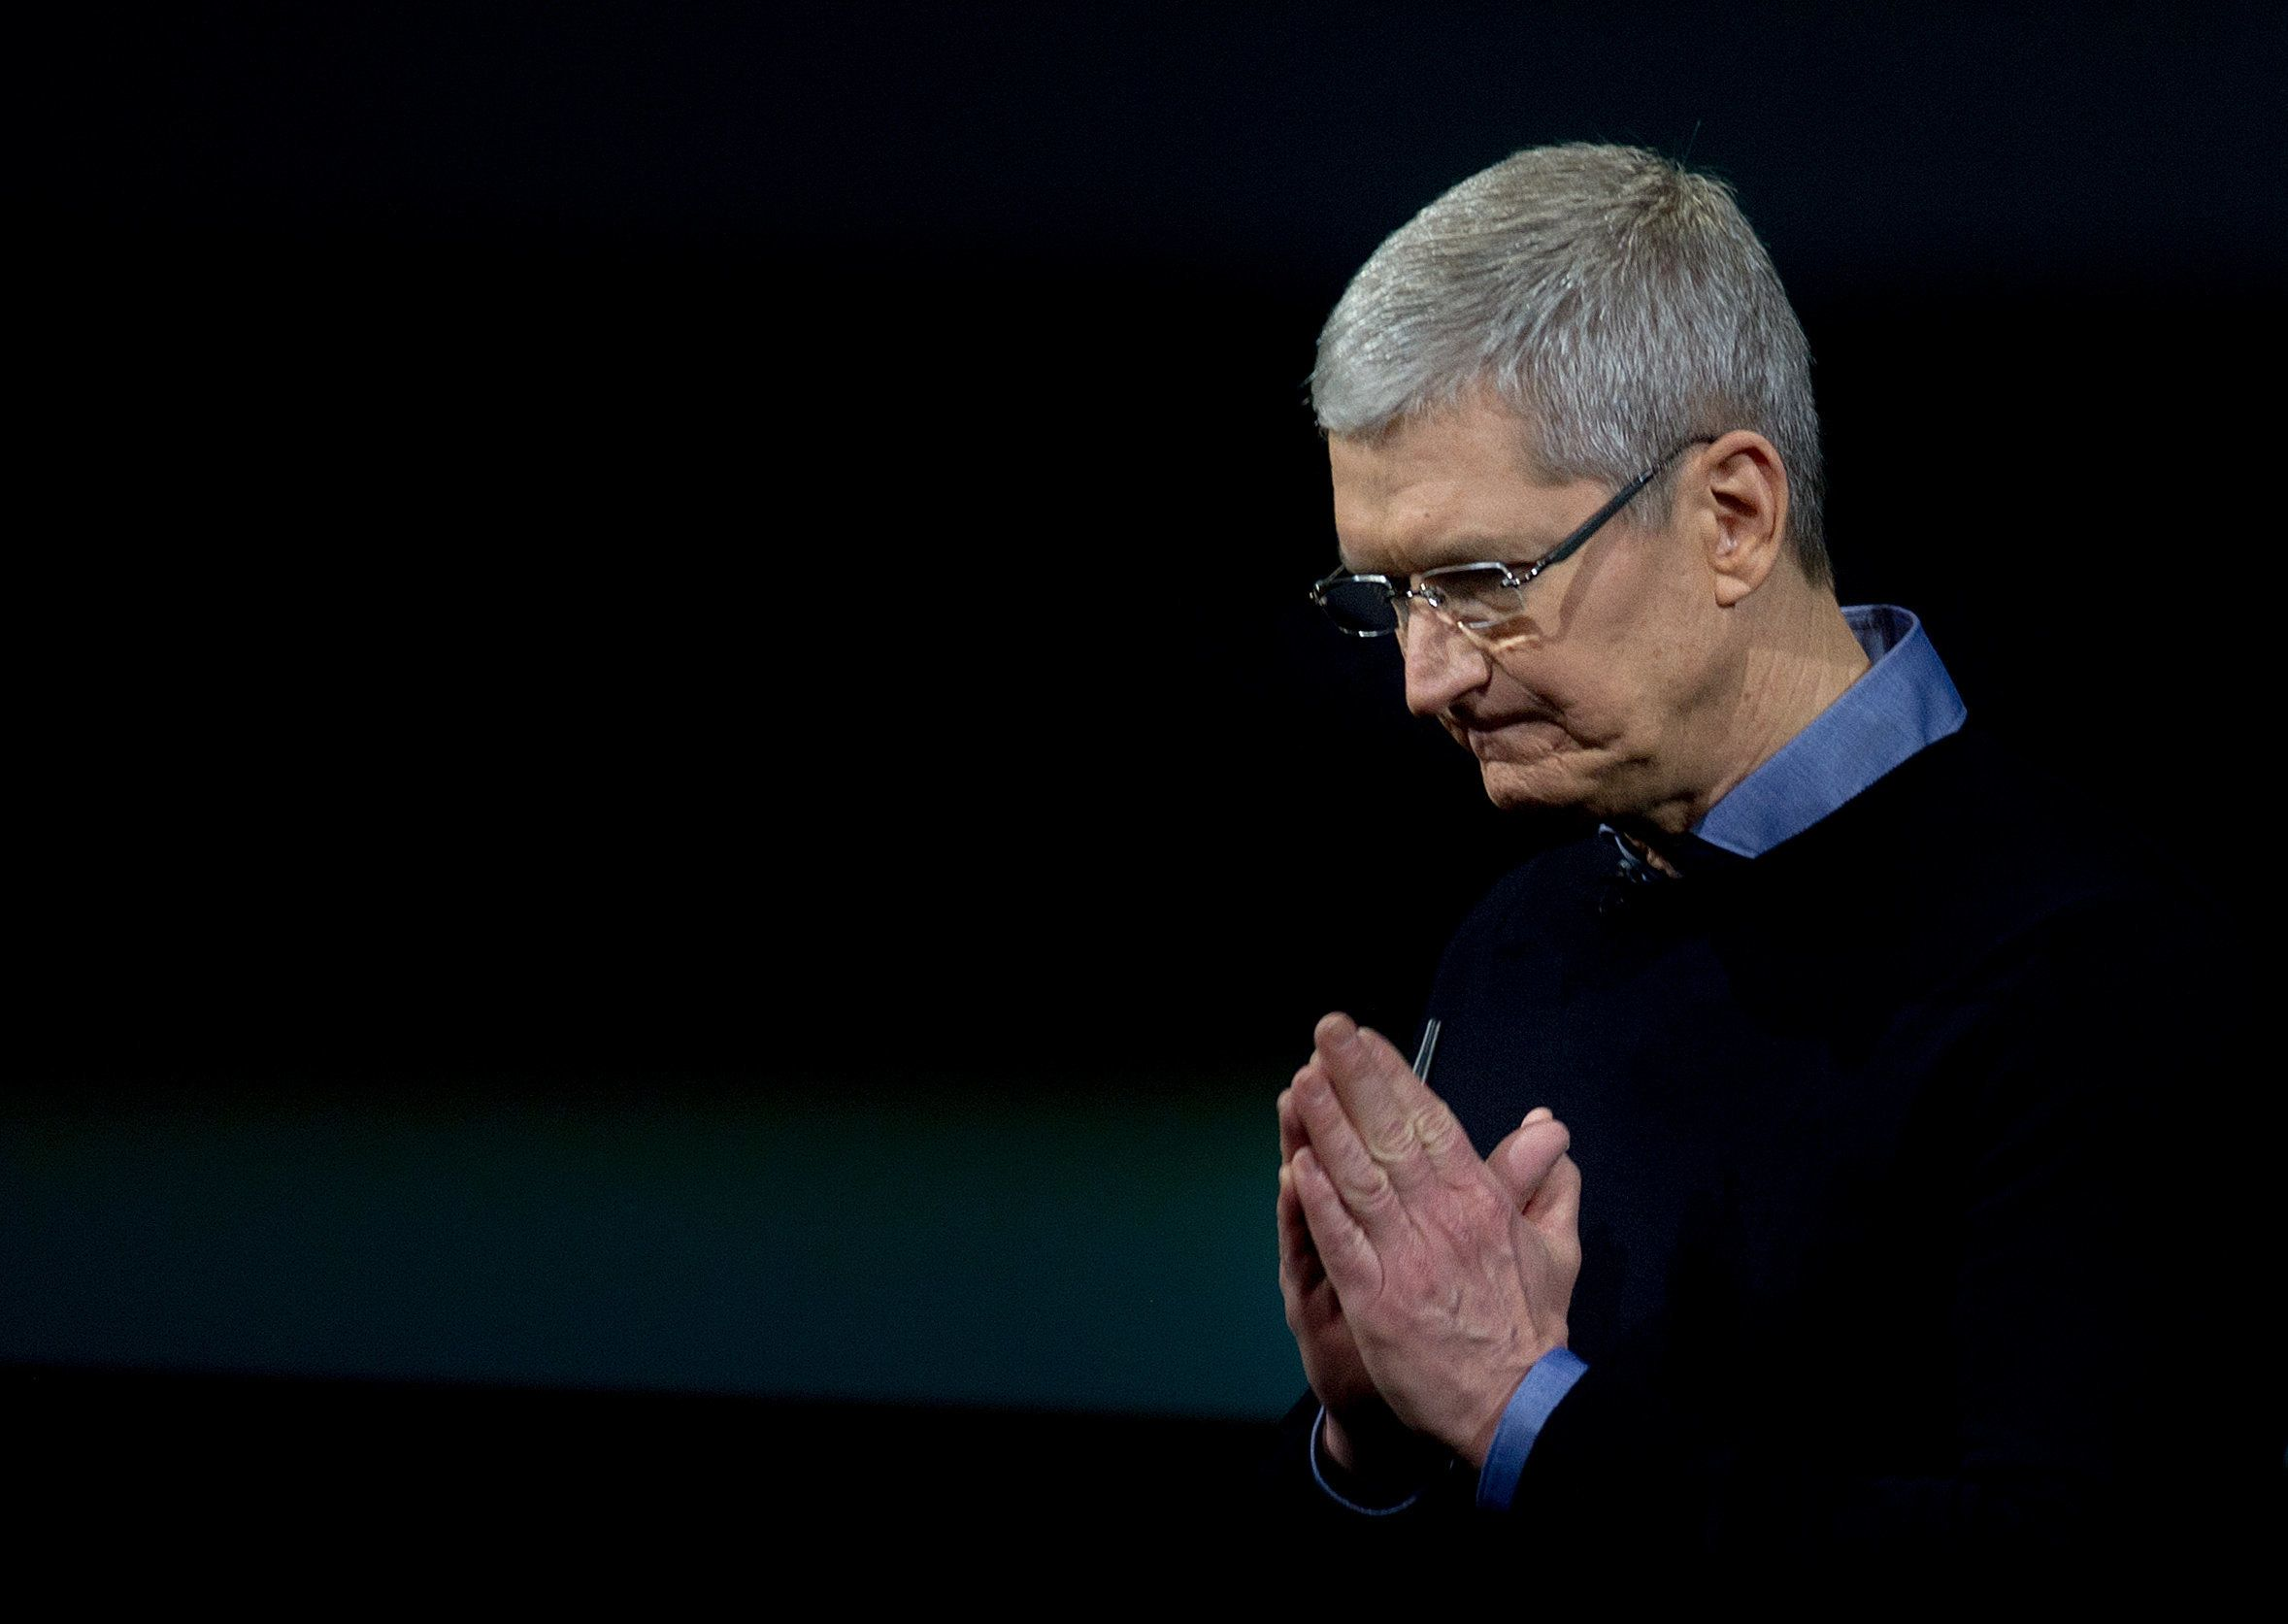 Tim Cook, CEO of Apple.Apple is one of the largest companies in America, and has money in offshore tax havens.